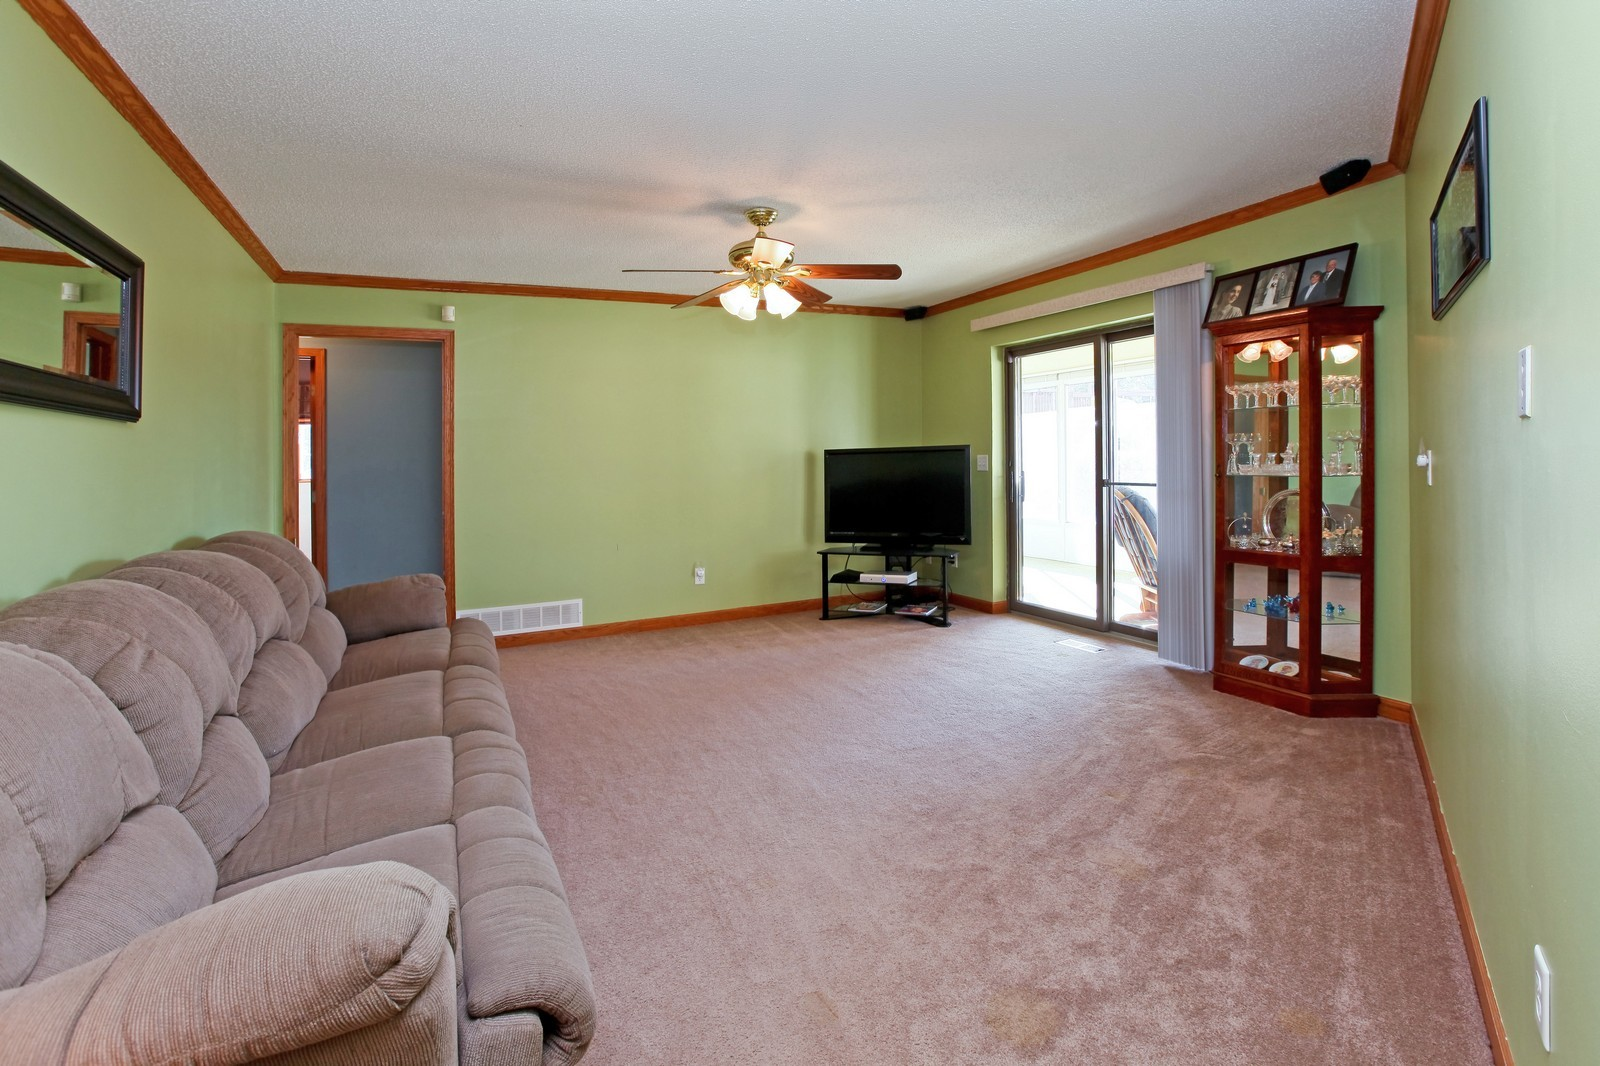 Real Estate Photography - 8095 Trail Haven Rd, Corcoran, MN, 55340 - Living Room